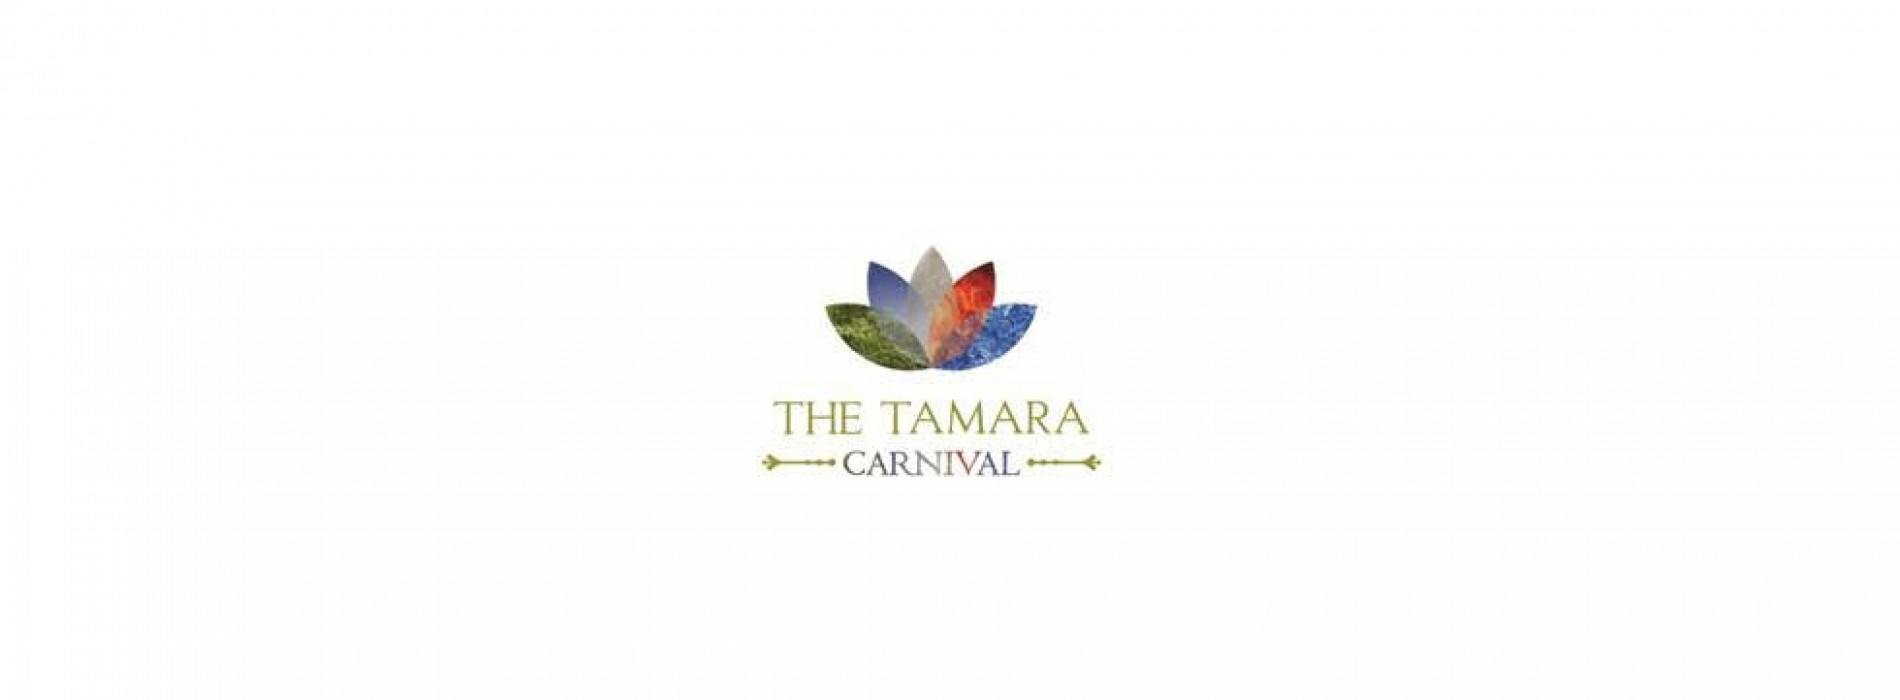 The Tamara Coorg returns with its much awaited annual cultural extravaganza – The Tamara Carnival